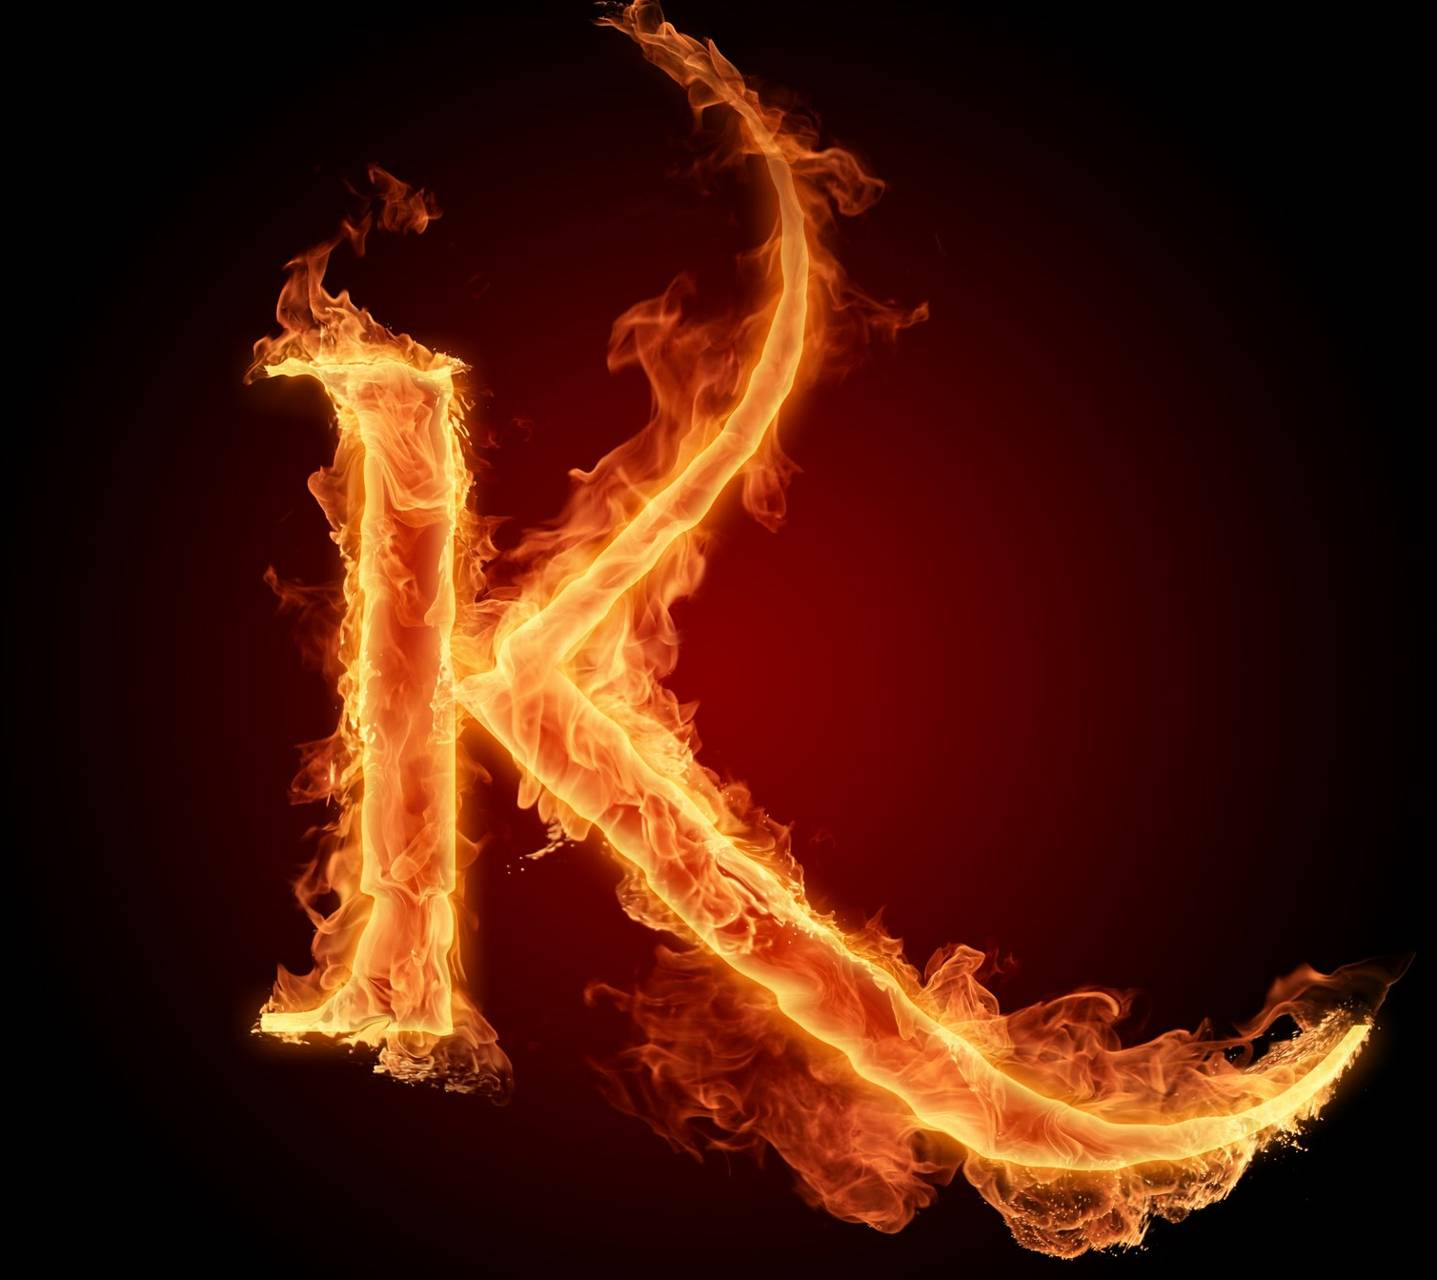 Letter k in fire hd wallpaper by mrlazy 8c free on zedge letter k in fire hd thecheapjerseys Image collections